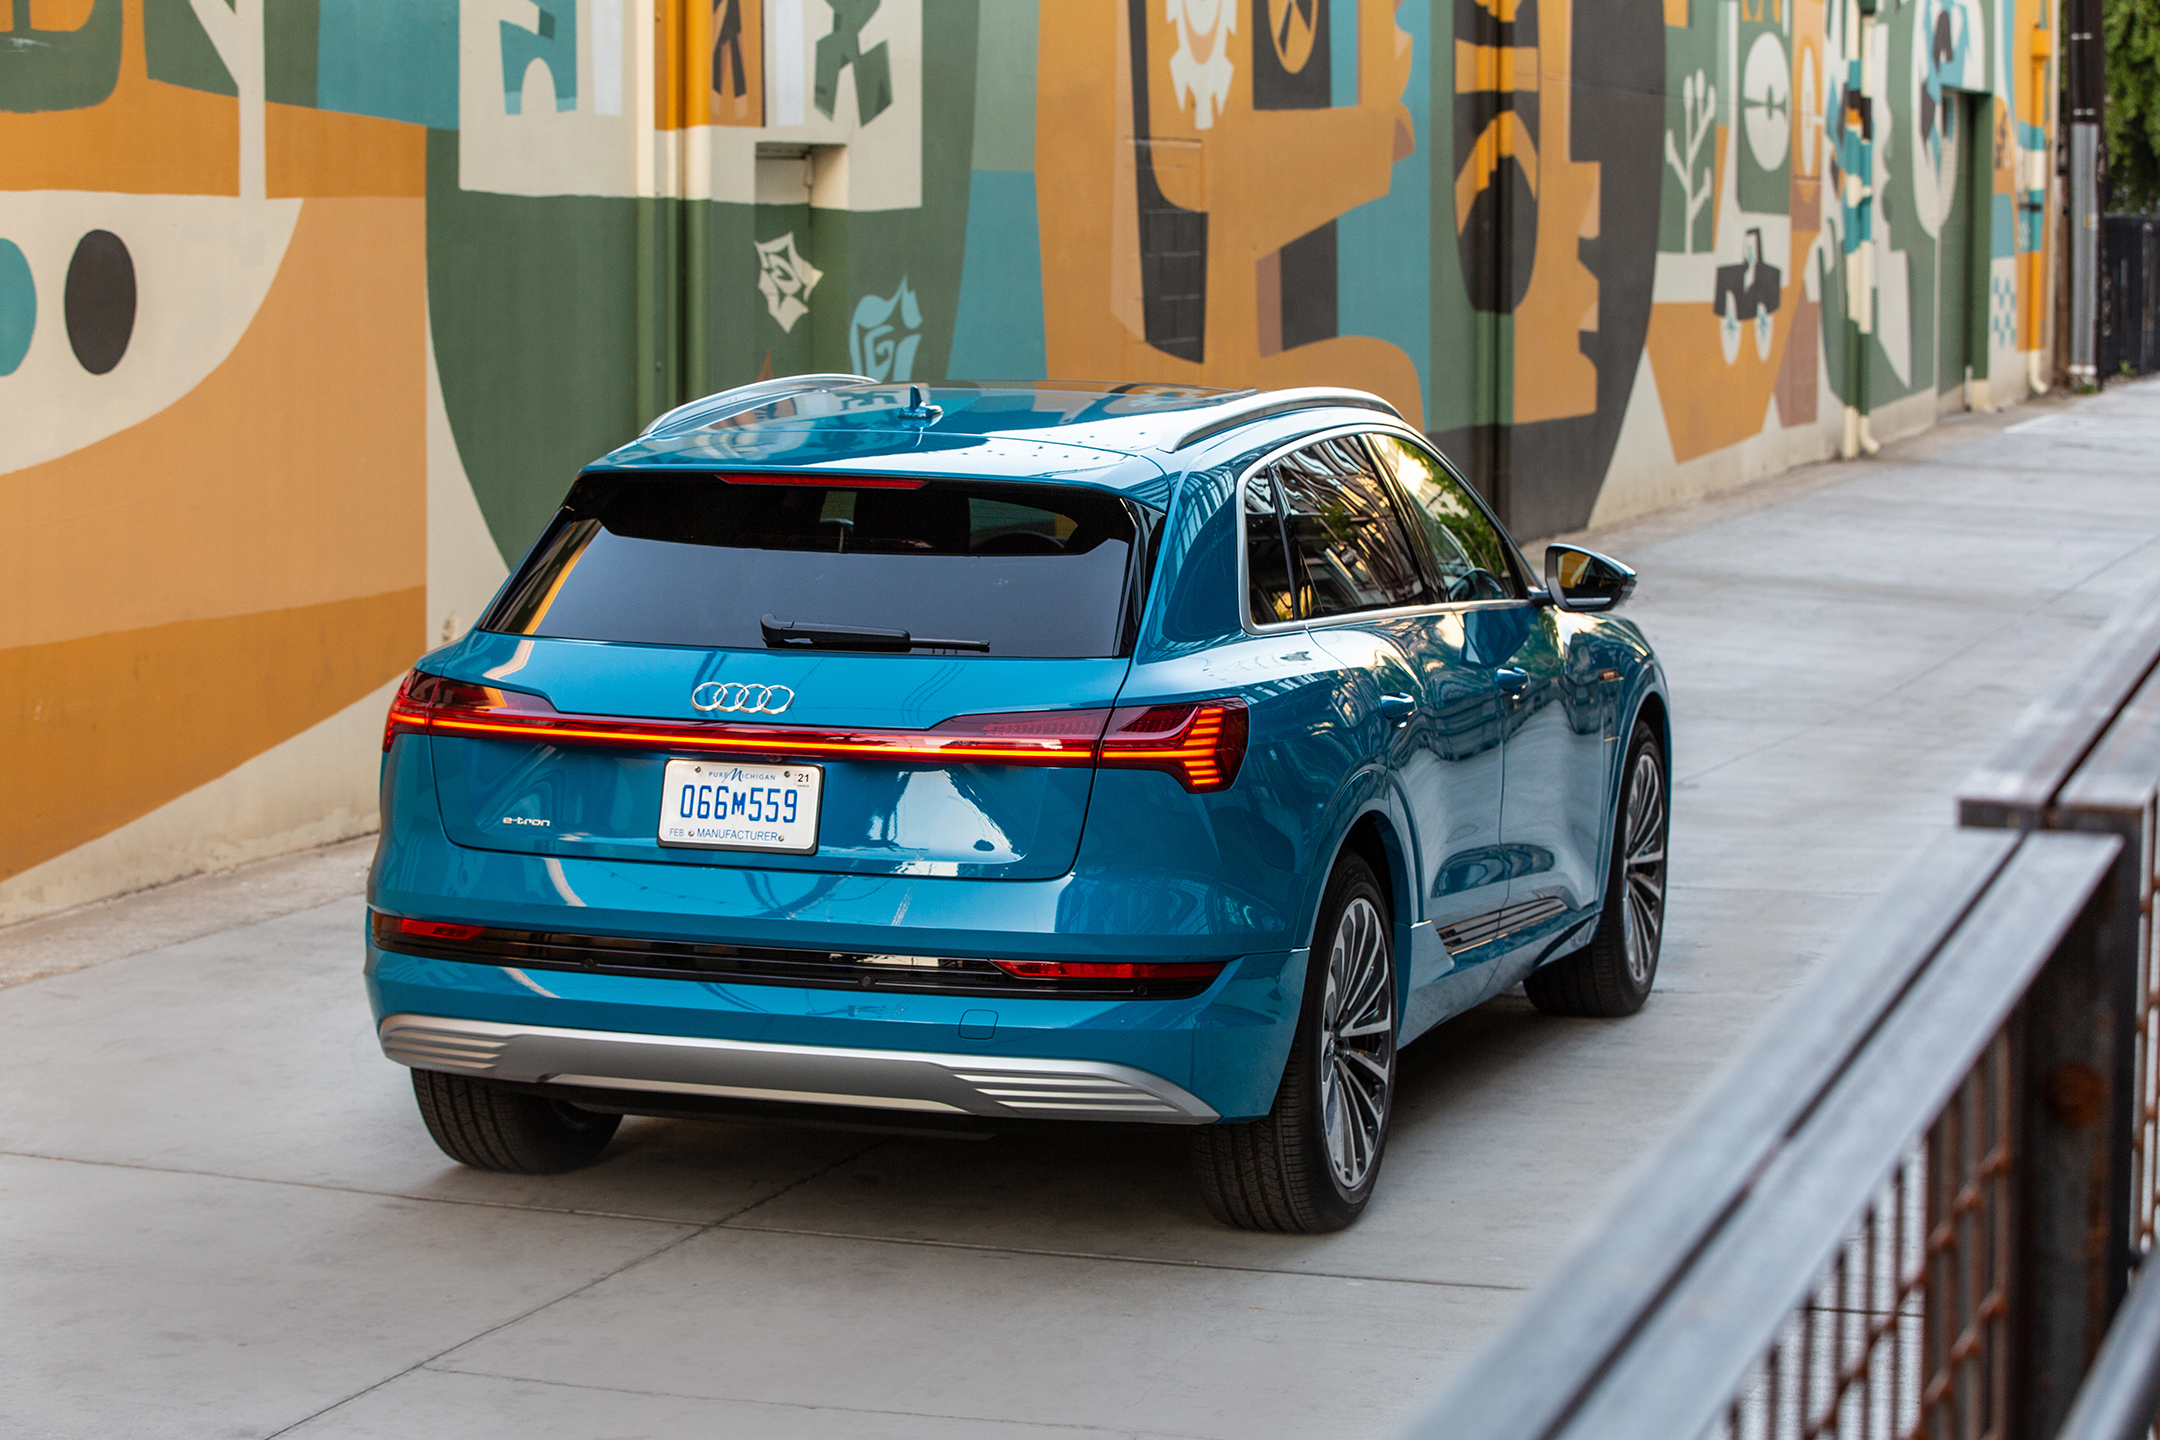 2019 Audi E-Tron: Everything You Need to Know via @carsdotcom